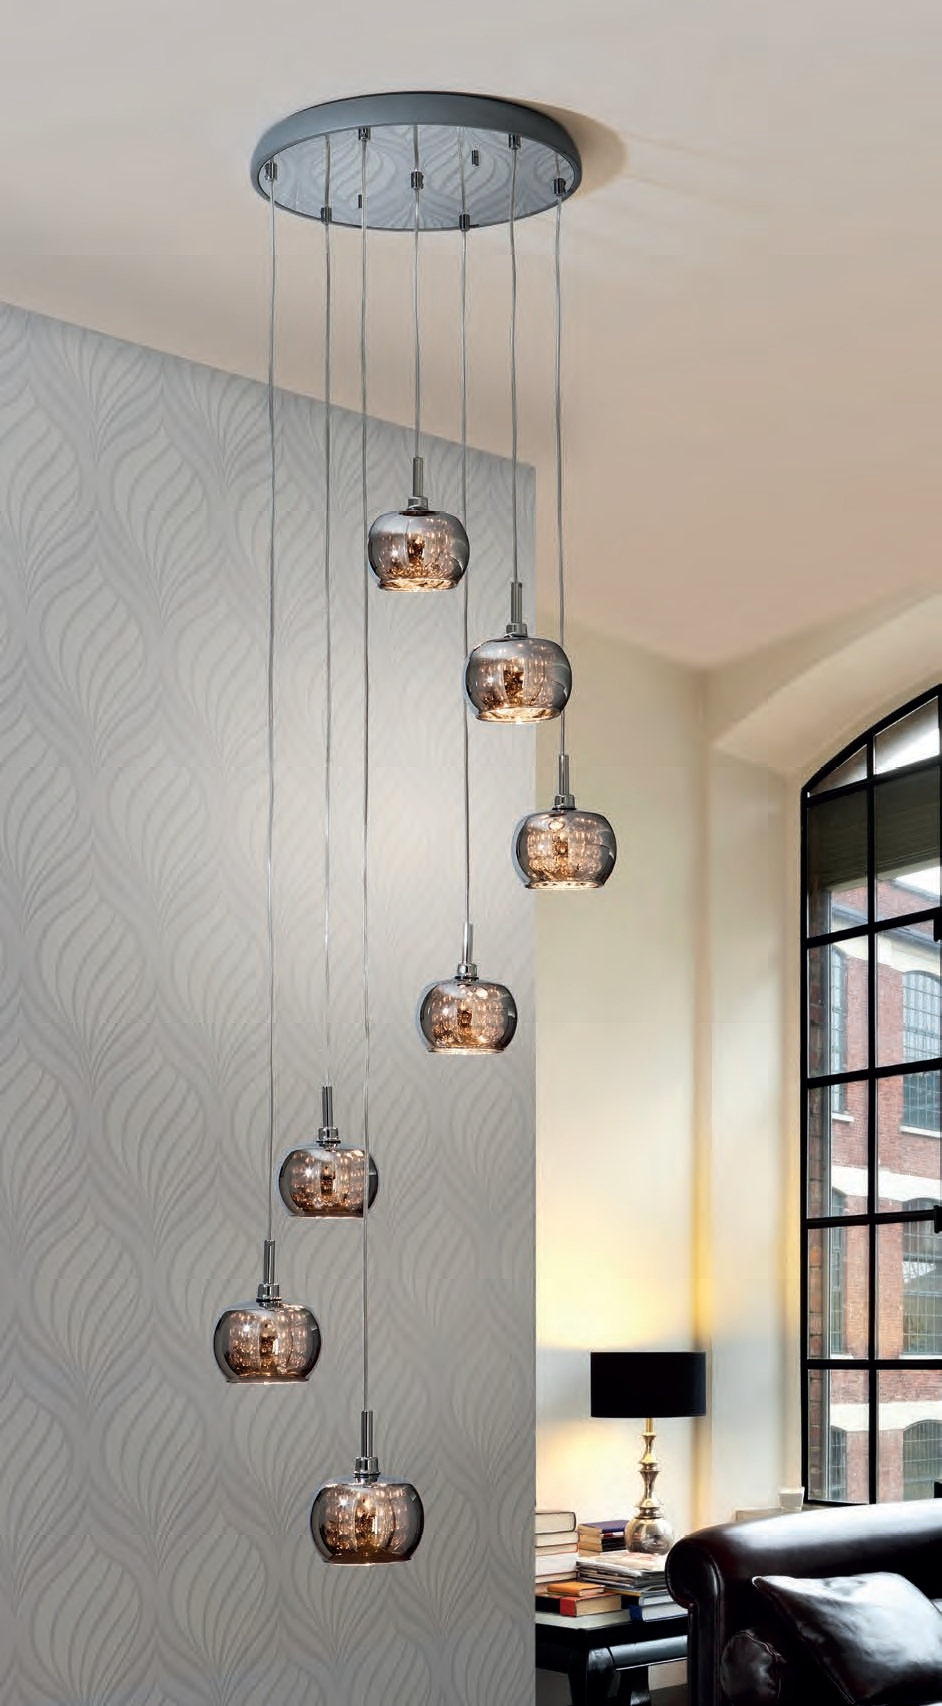 Lighting Basement Washroom Stairs: 15 Collection Of Stairwell Chandelier Lighting